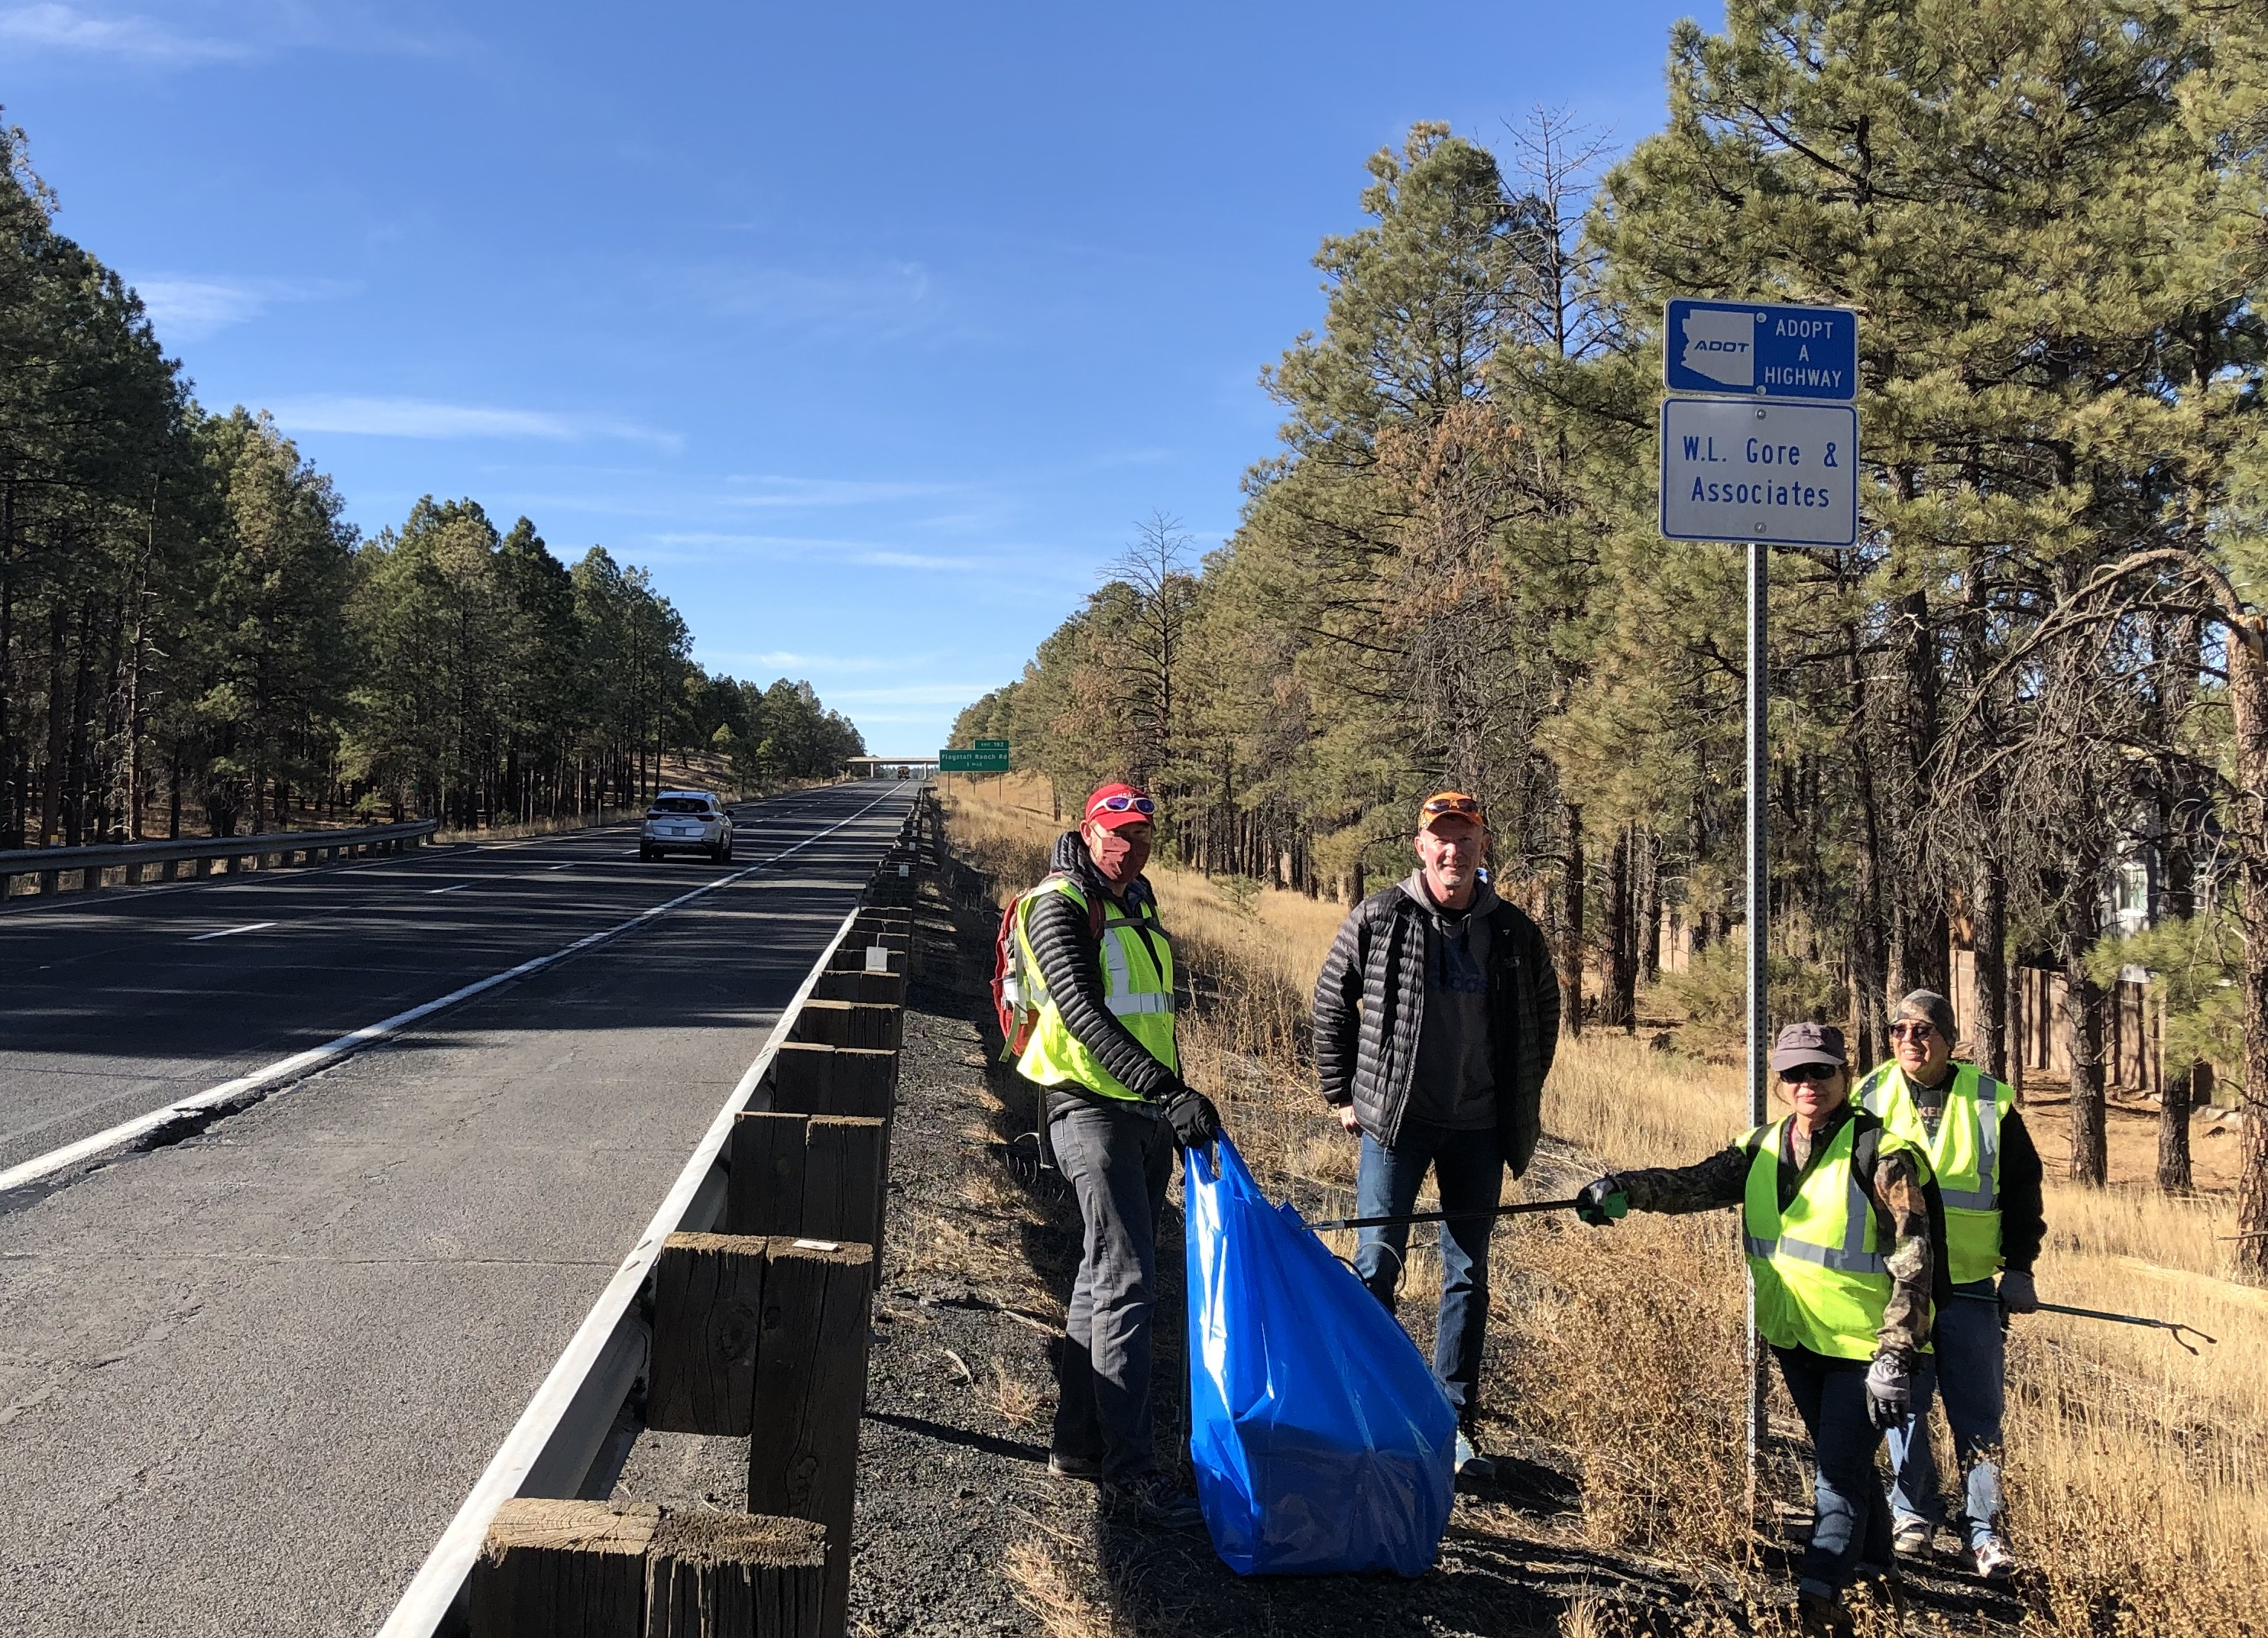 WL Gore and Associates litter cleanup